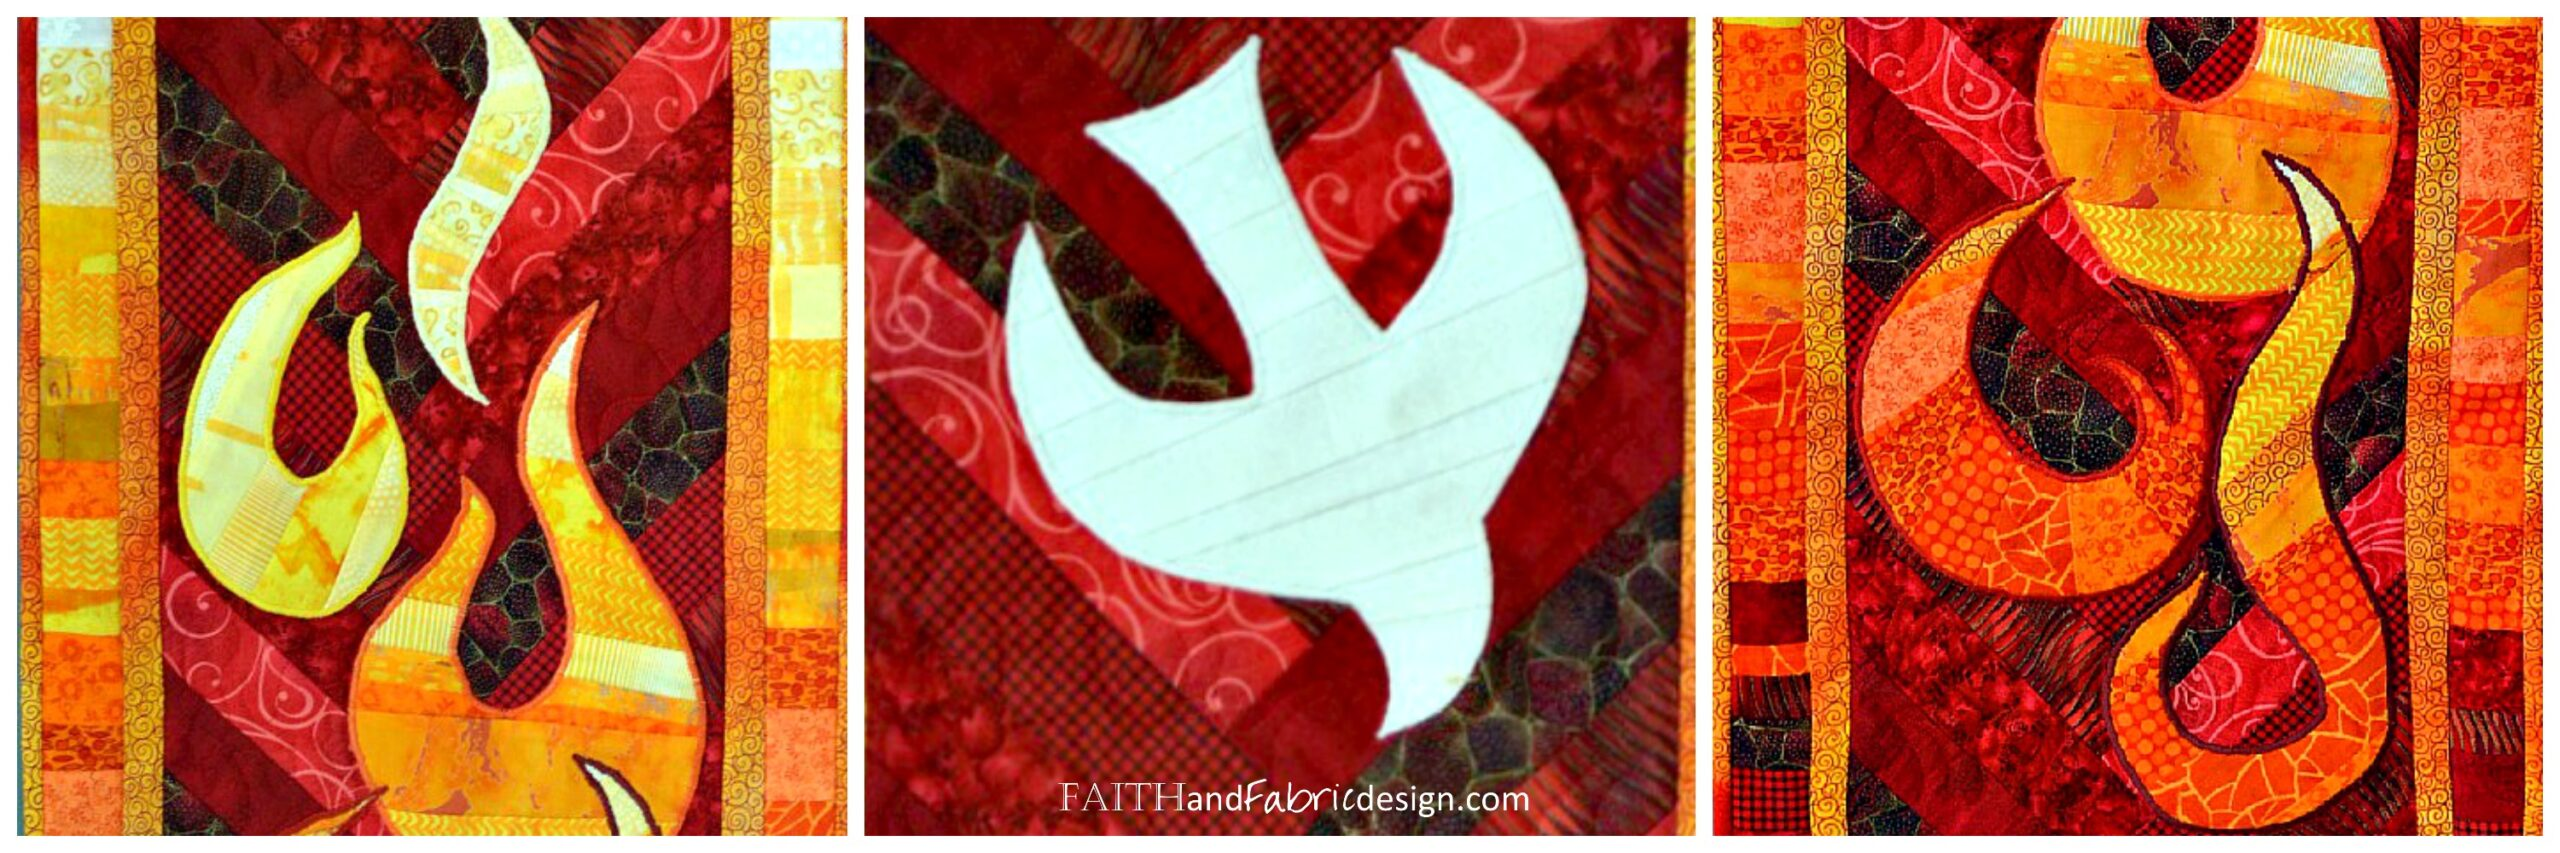 Faith and Fabric - Pentecost Quilt Pattern 2